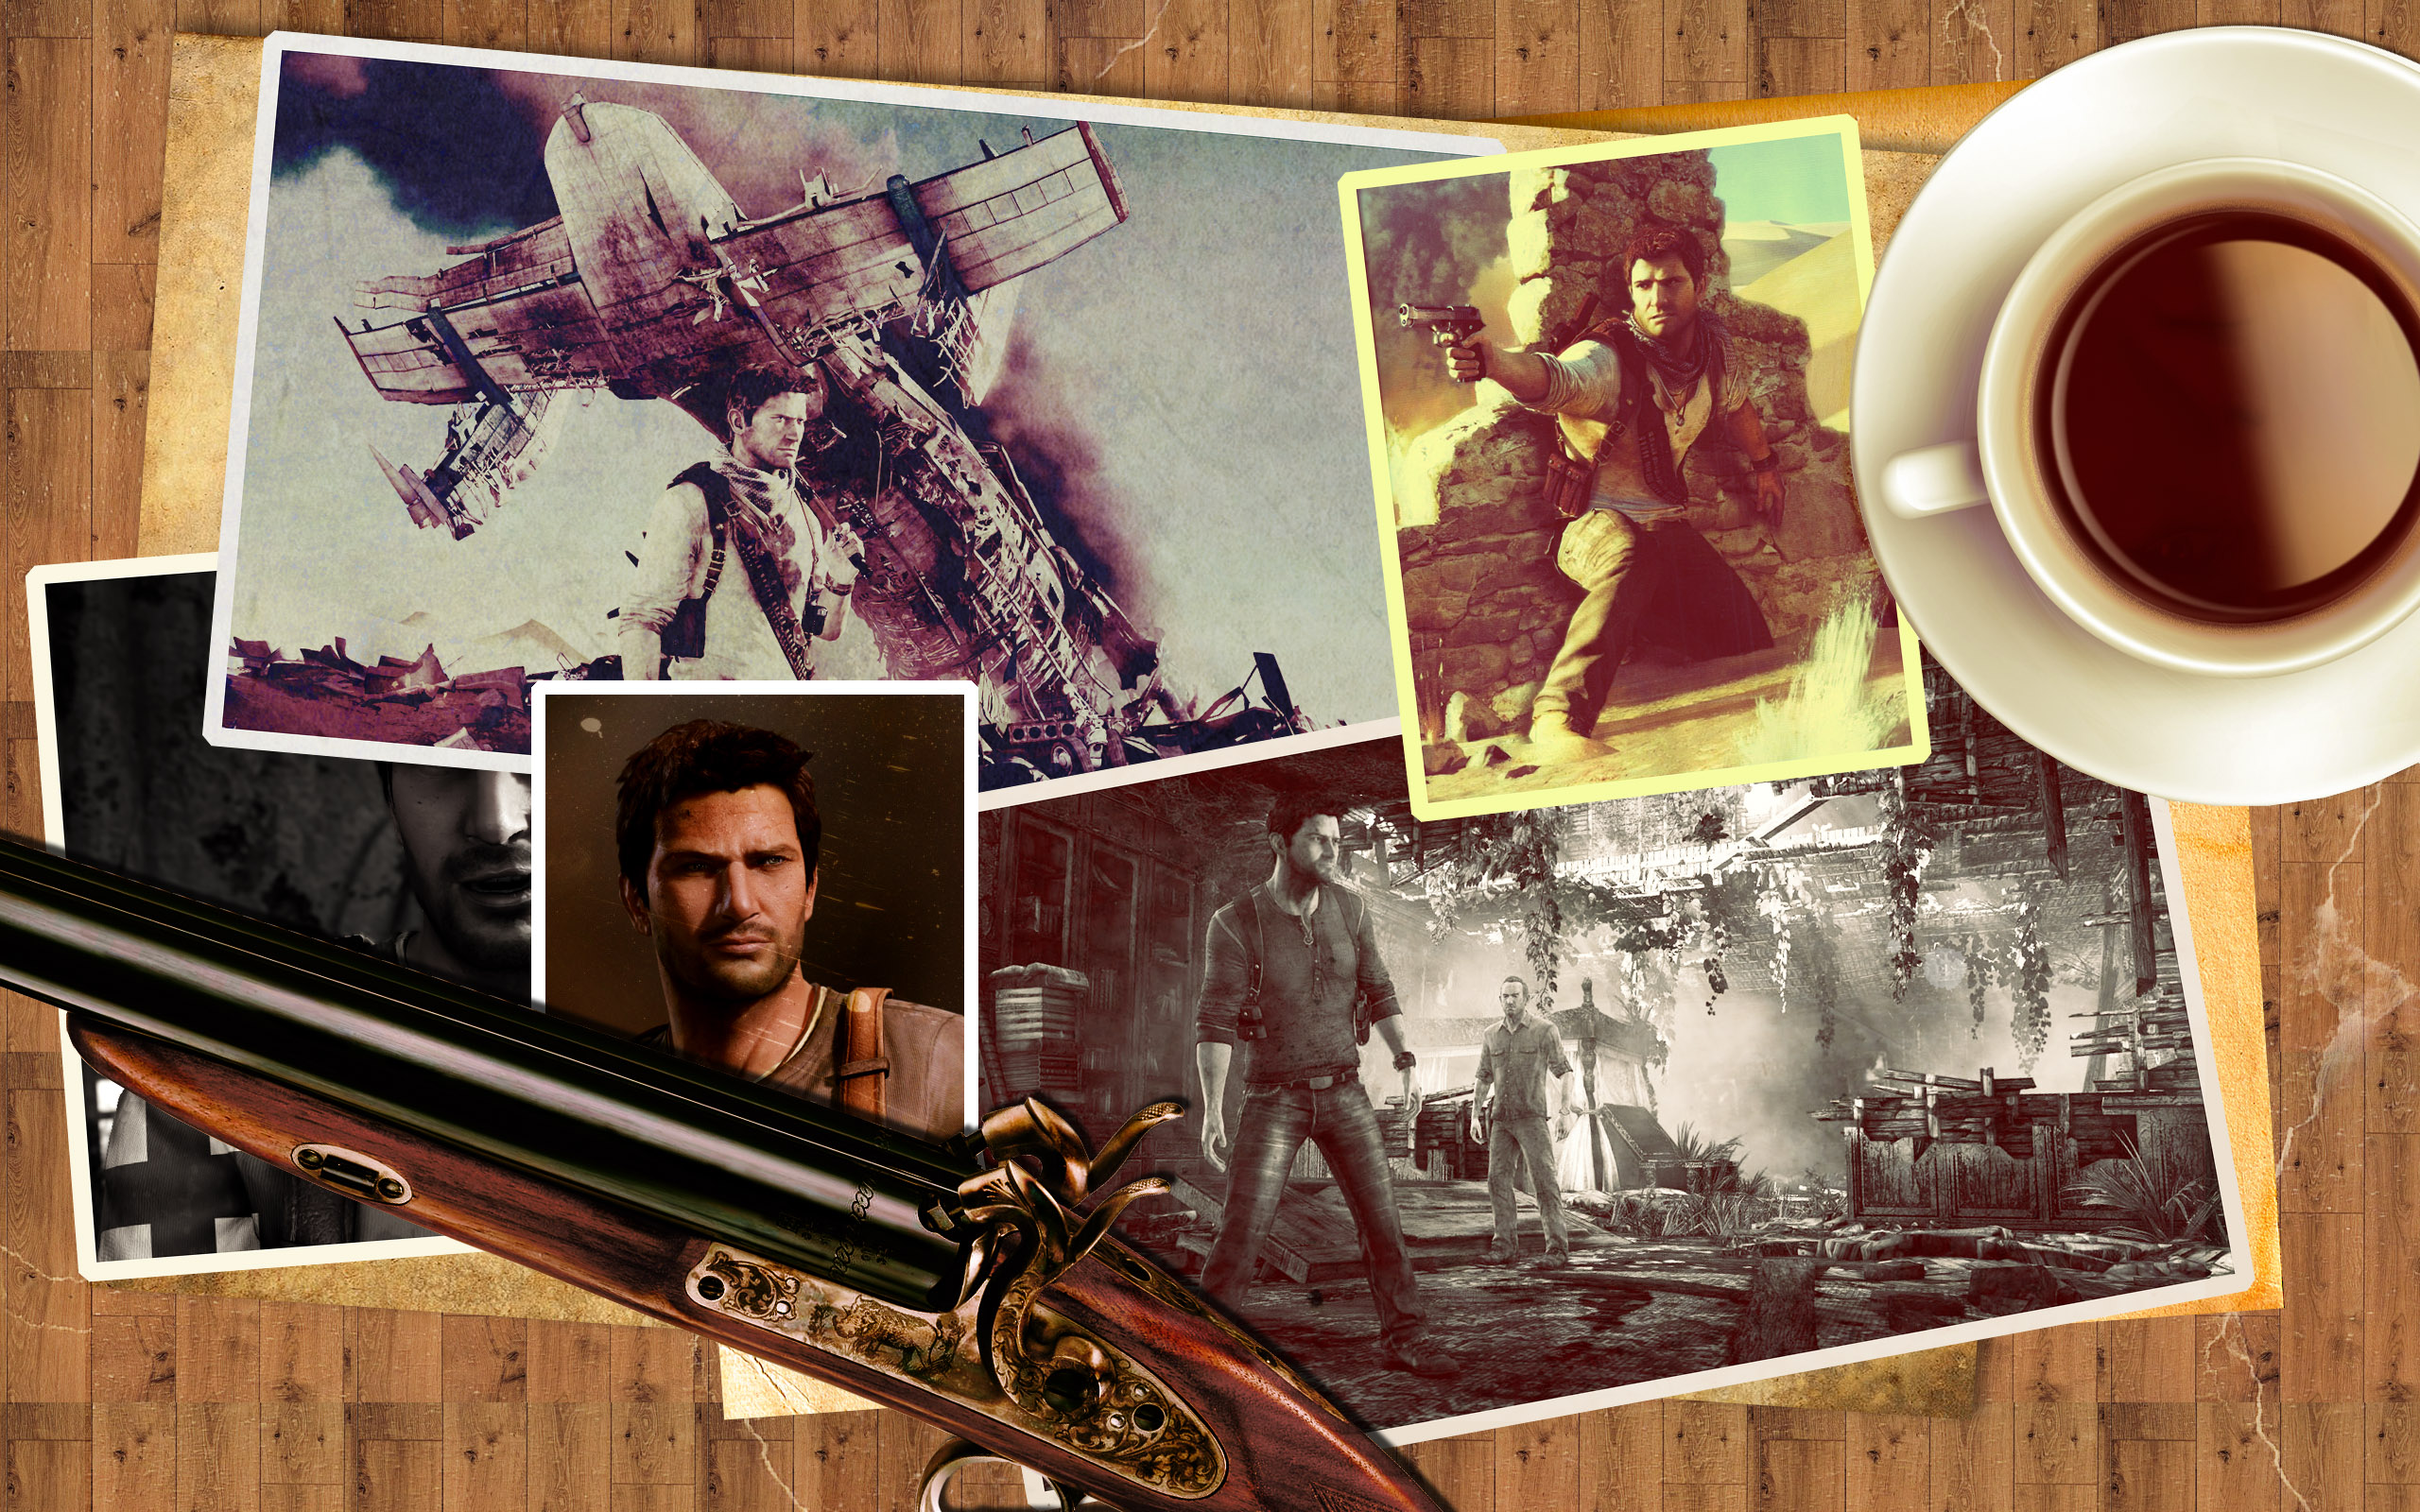 Preview Uncharted Backgrounds, Grazyna Mckeehan